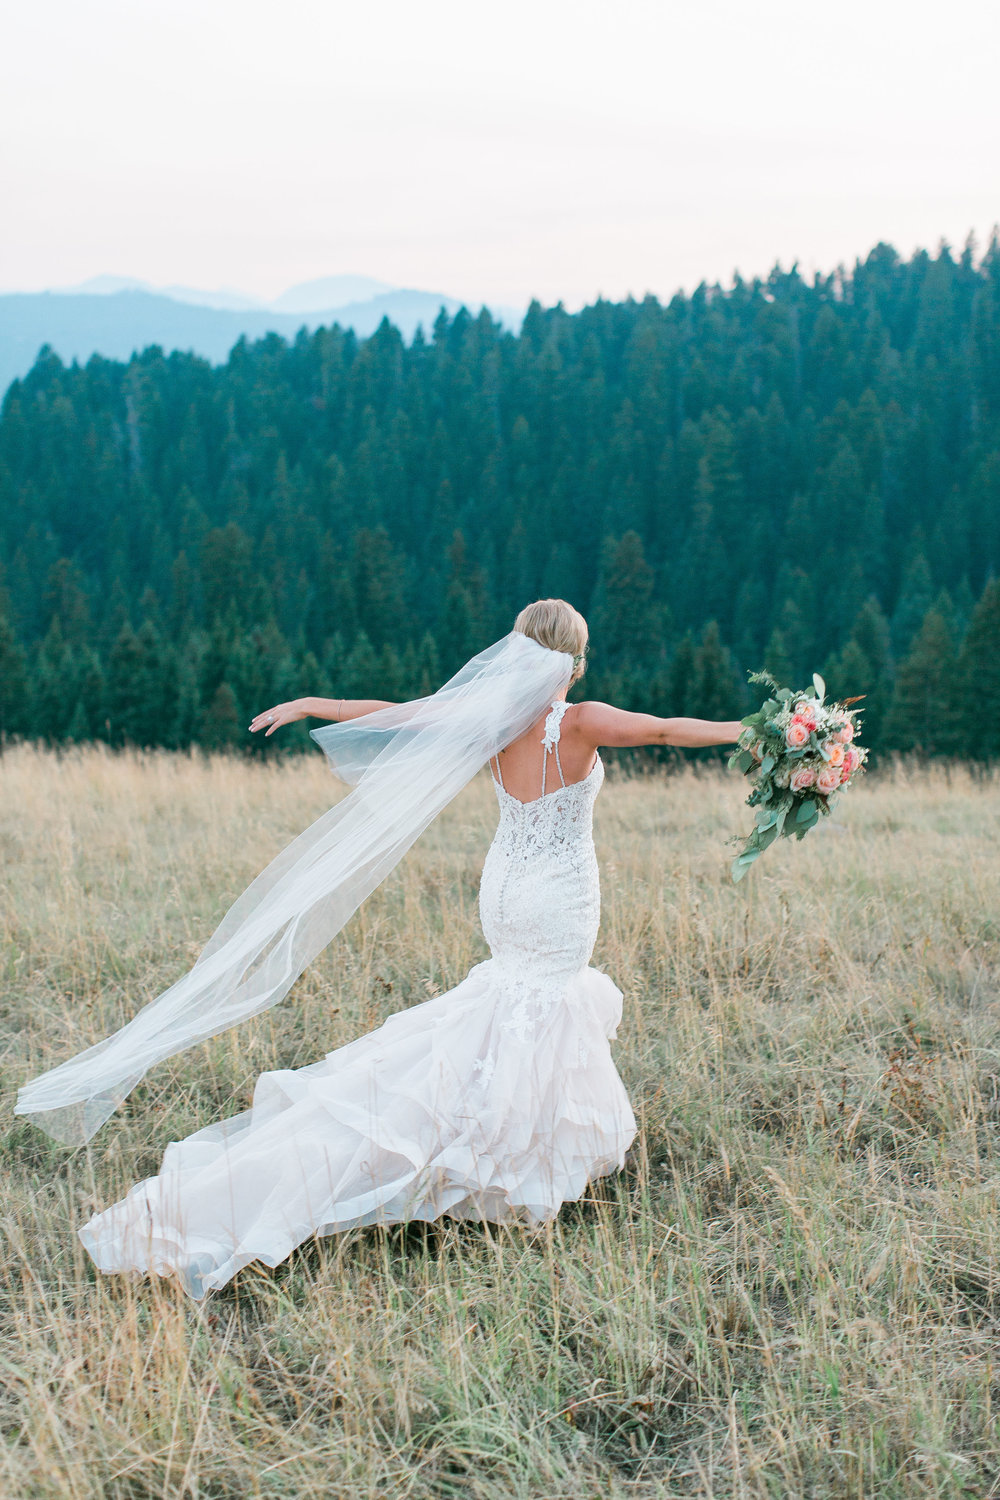 Boho bride walking with arms out free spirit and mountains in background Big Sky Montana Lone Mountain Ranch wedding Minnesota wedding photography Mallory Kiesow Photography